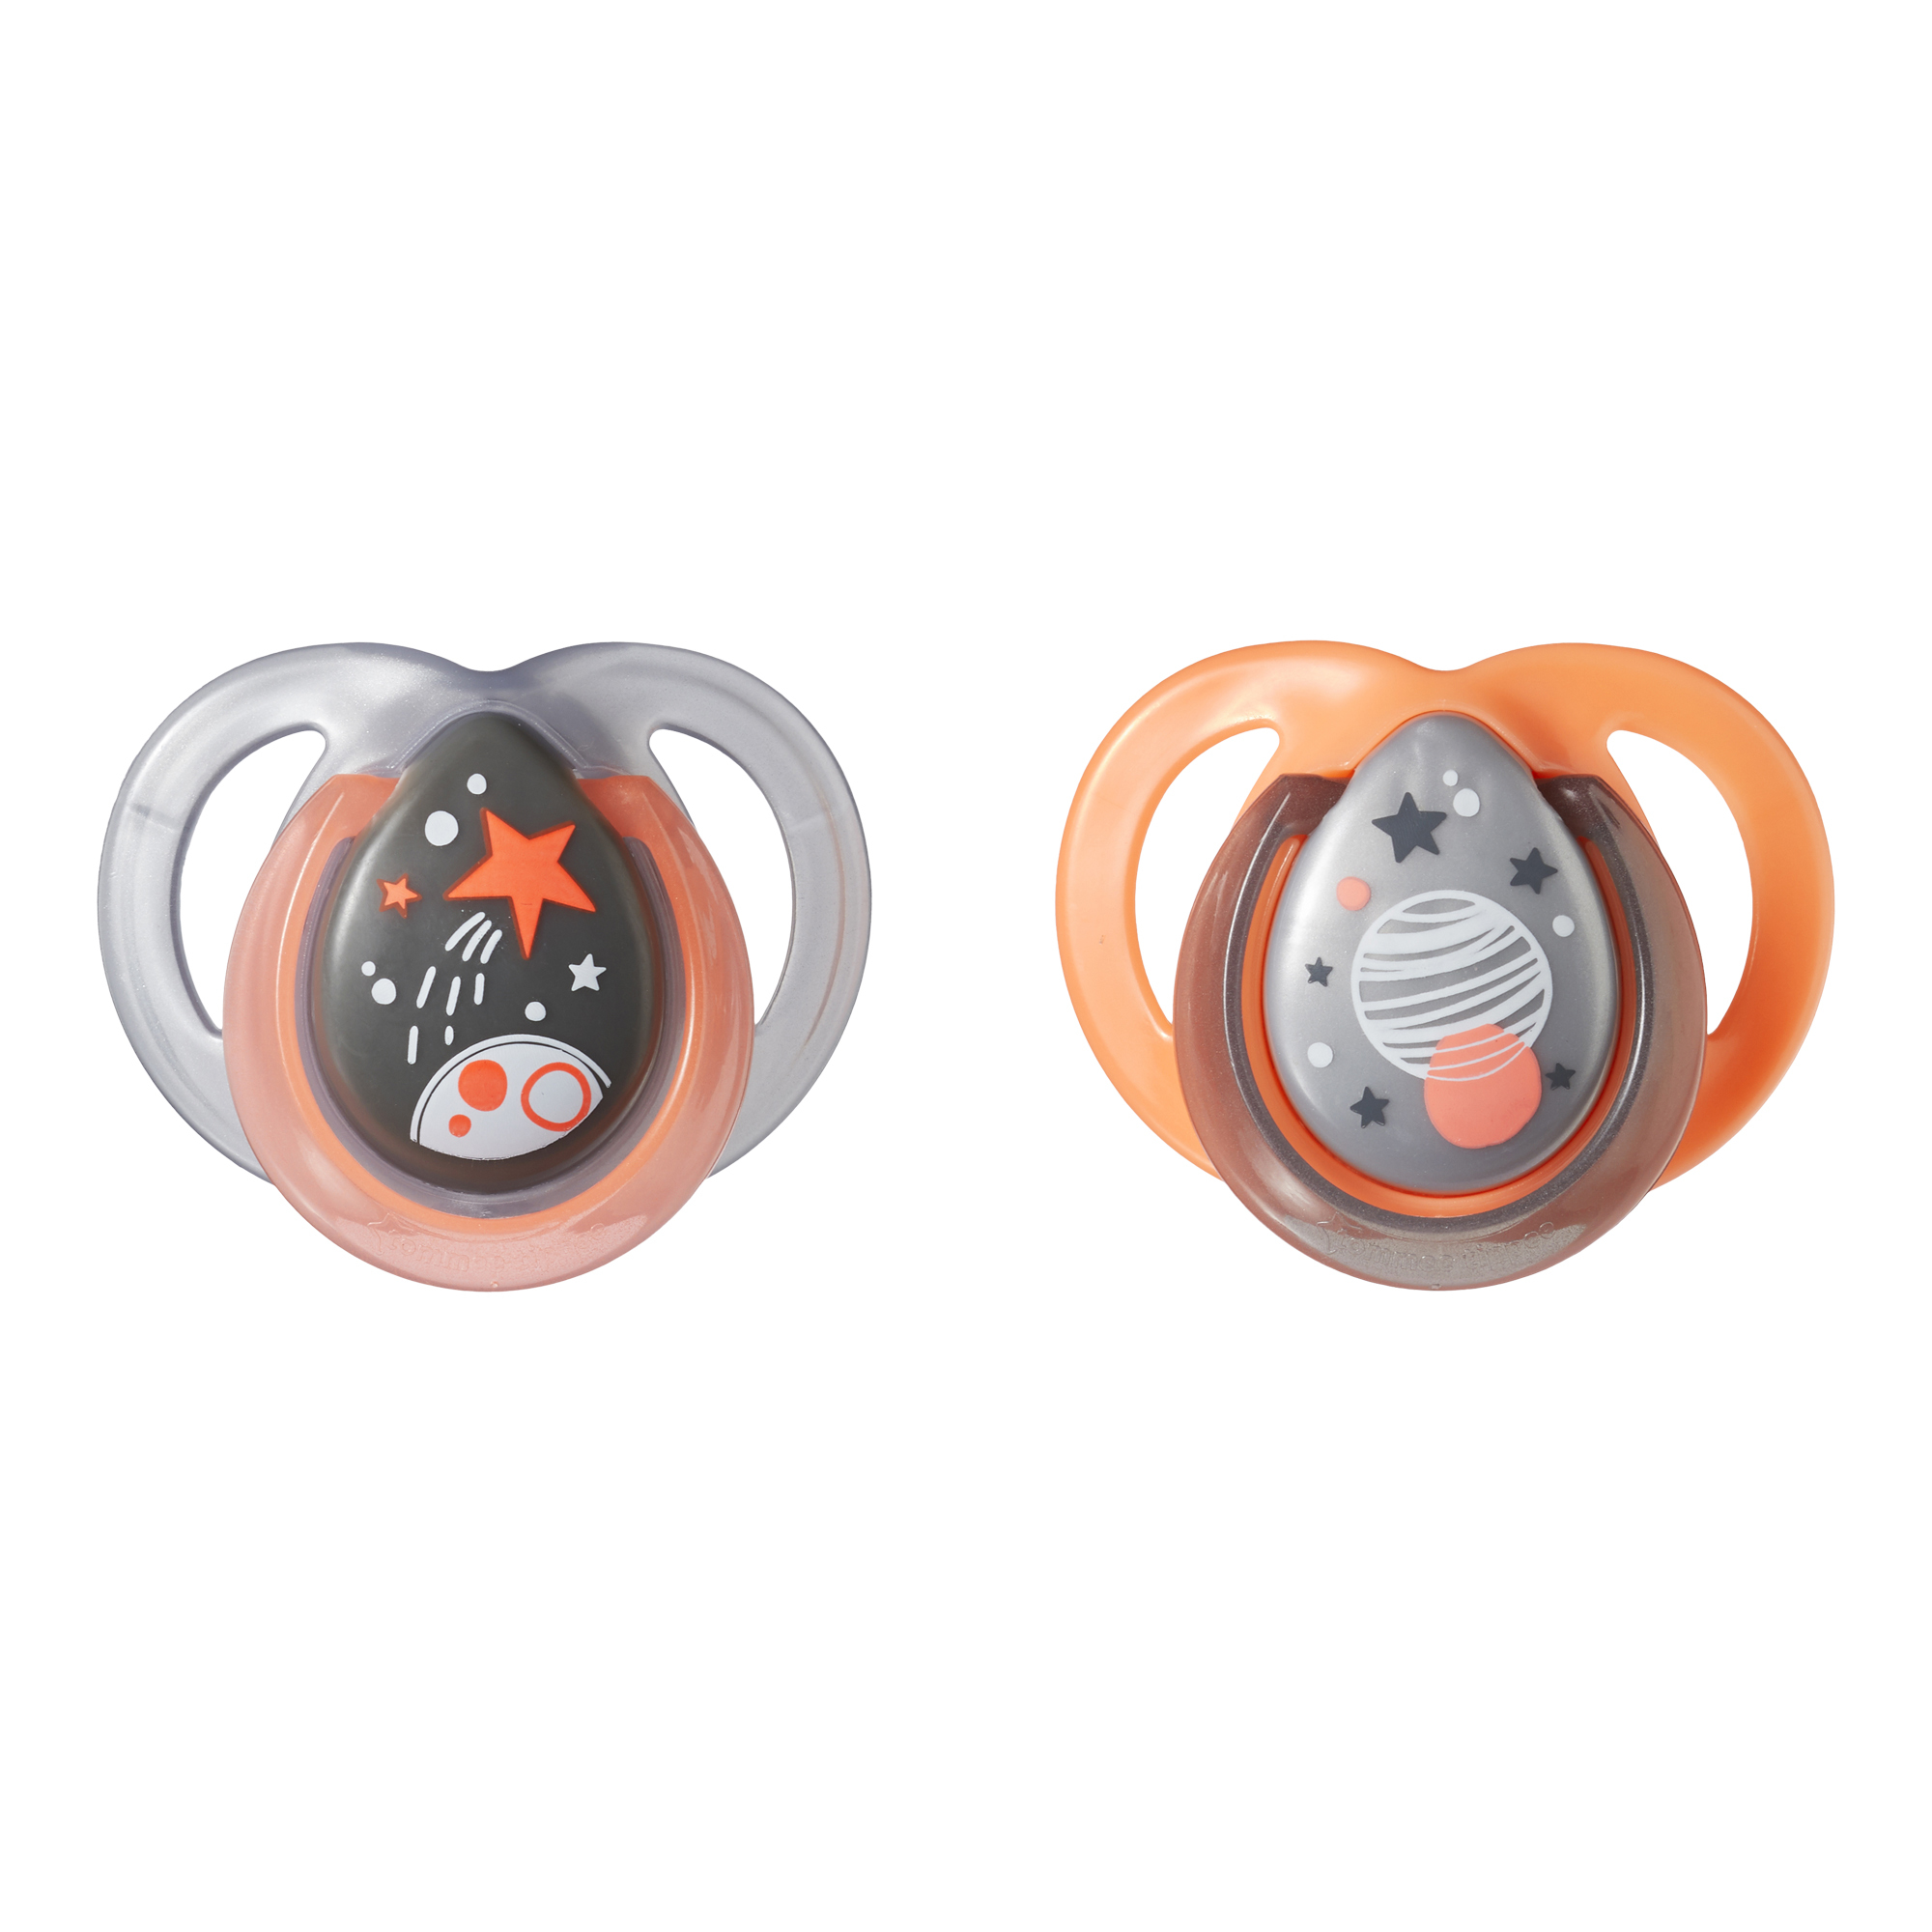 Tommee Tippee Closer to Nature Night Pacifiers, 0-6 months - 2 count (Colors May Vary)